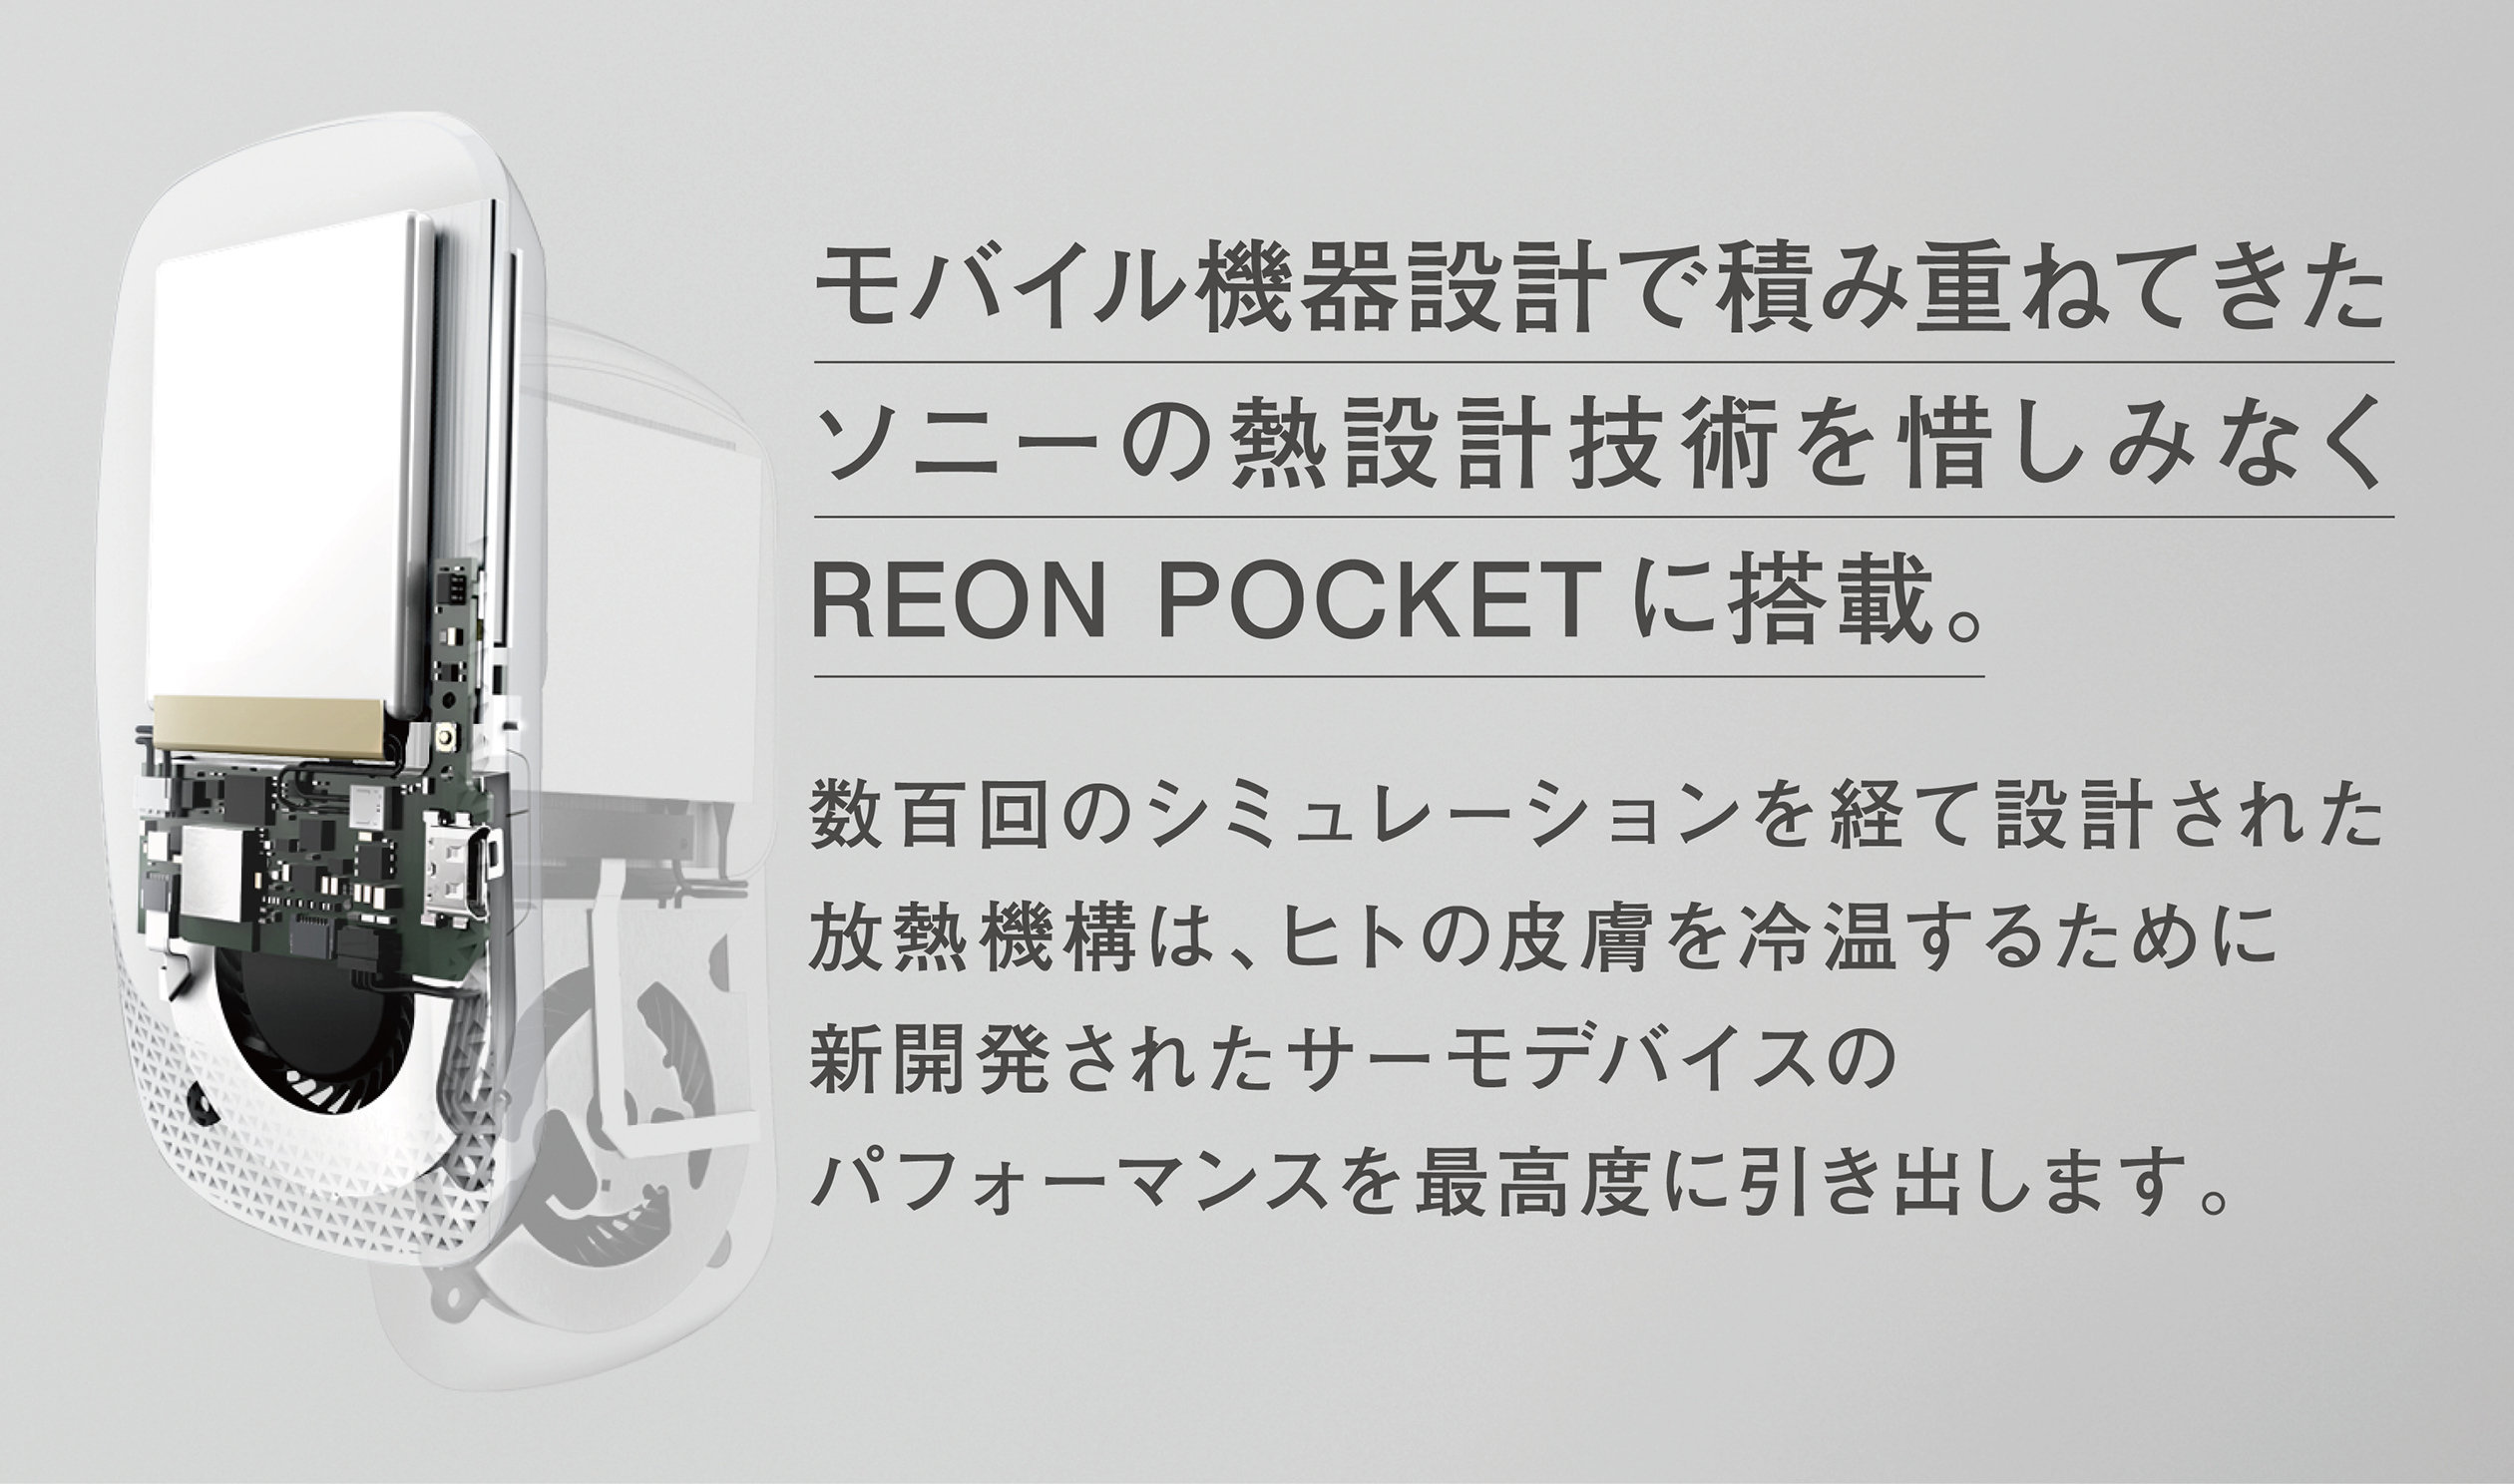 REON POCKET